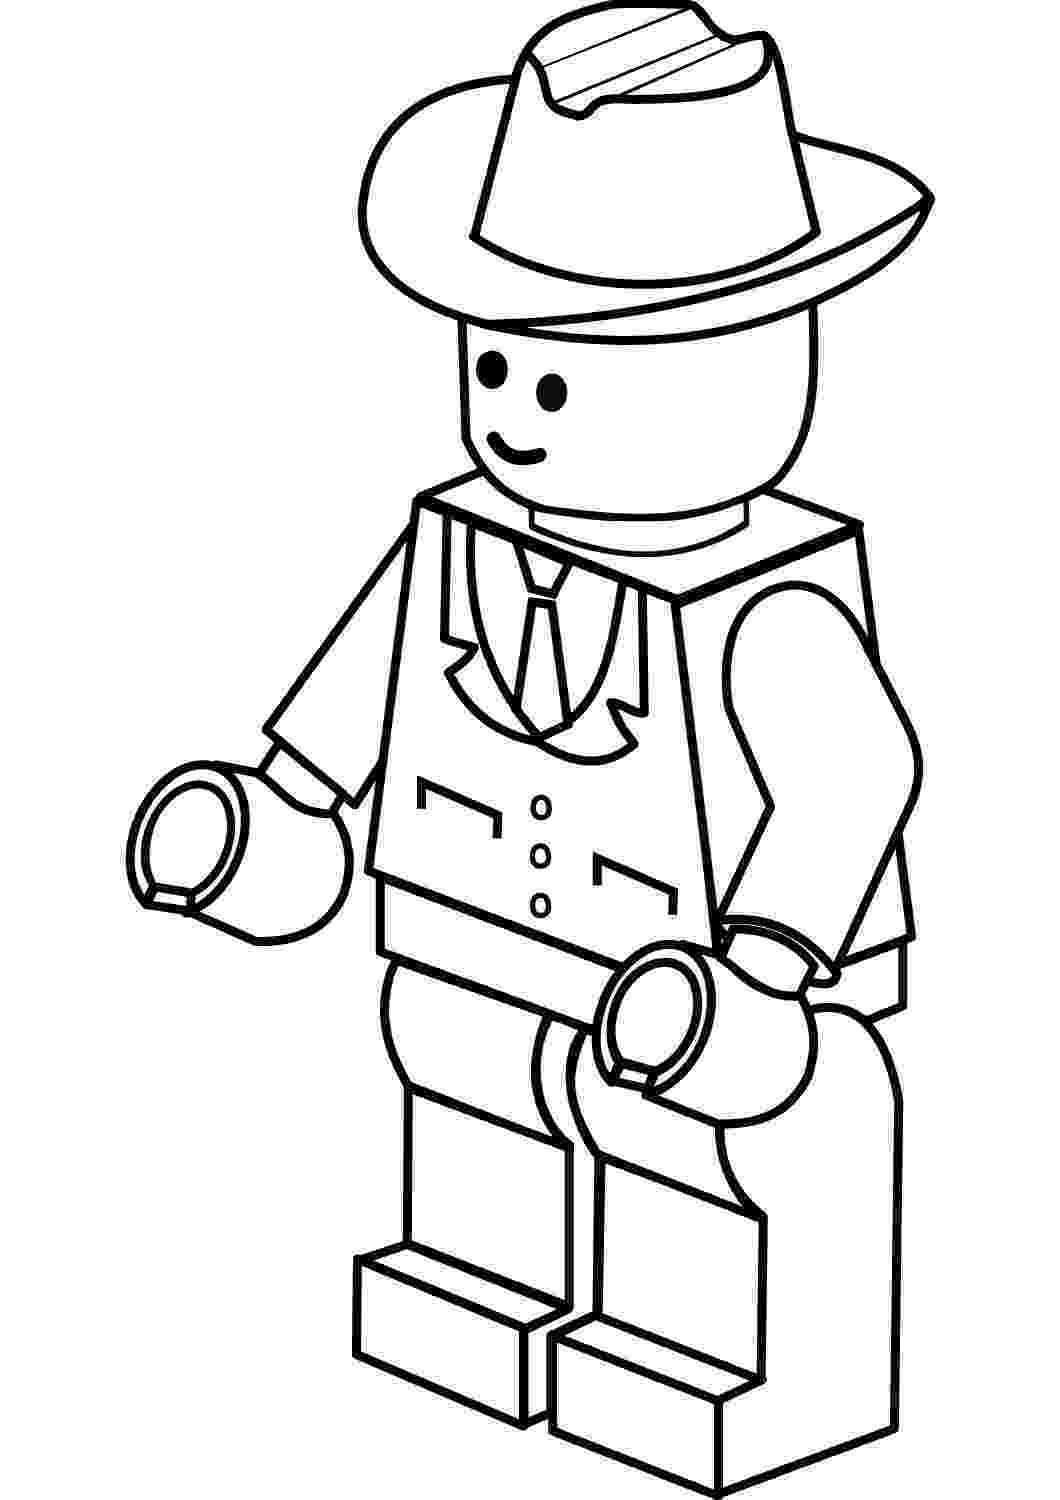 lego pages to color more complex lego figure colouring sheet lego coloring pages color to lego